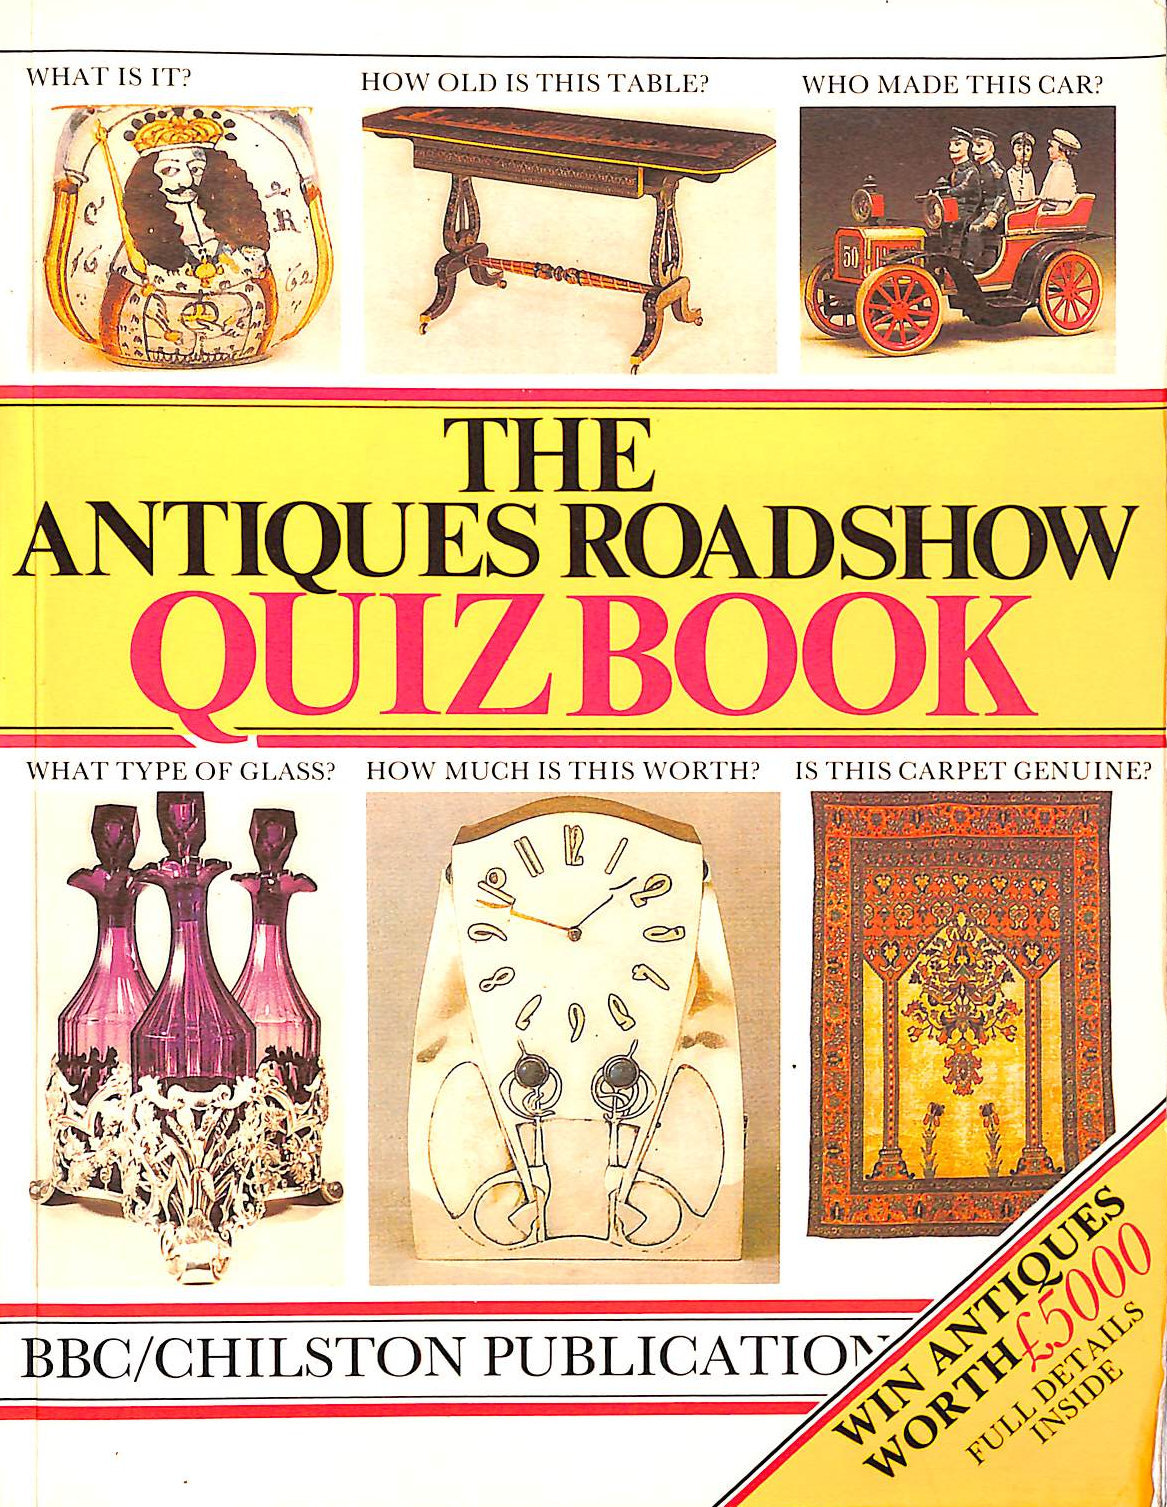 Category: Antiques & Collectibles